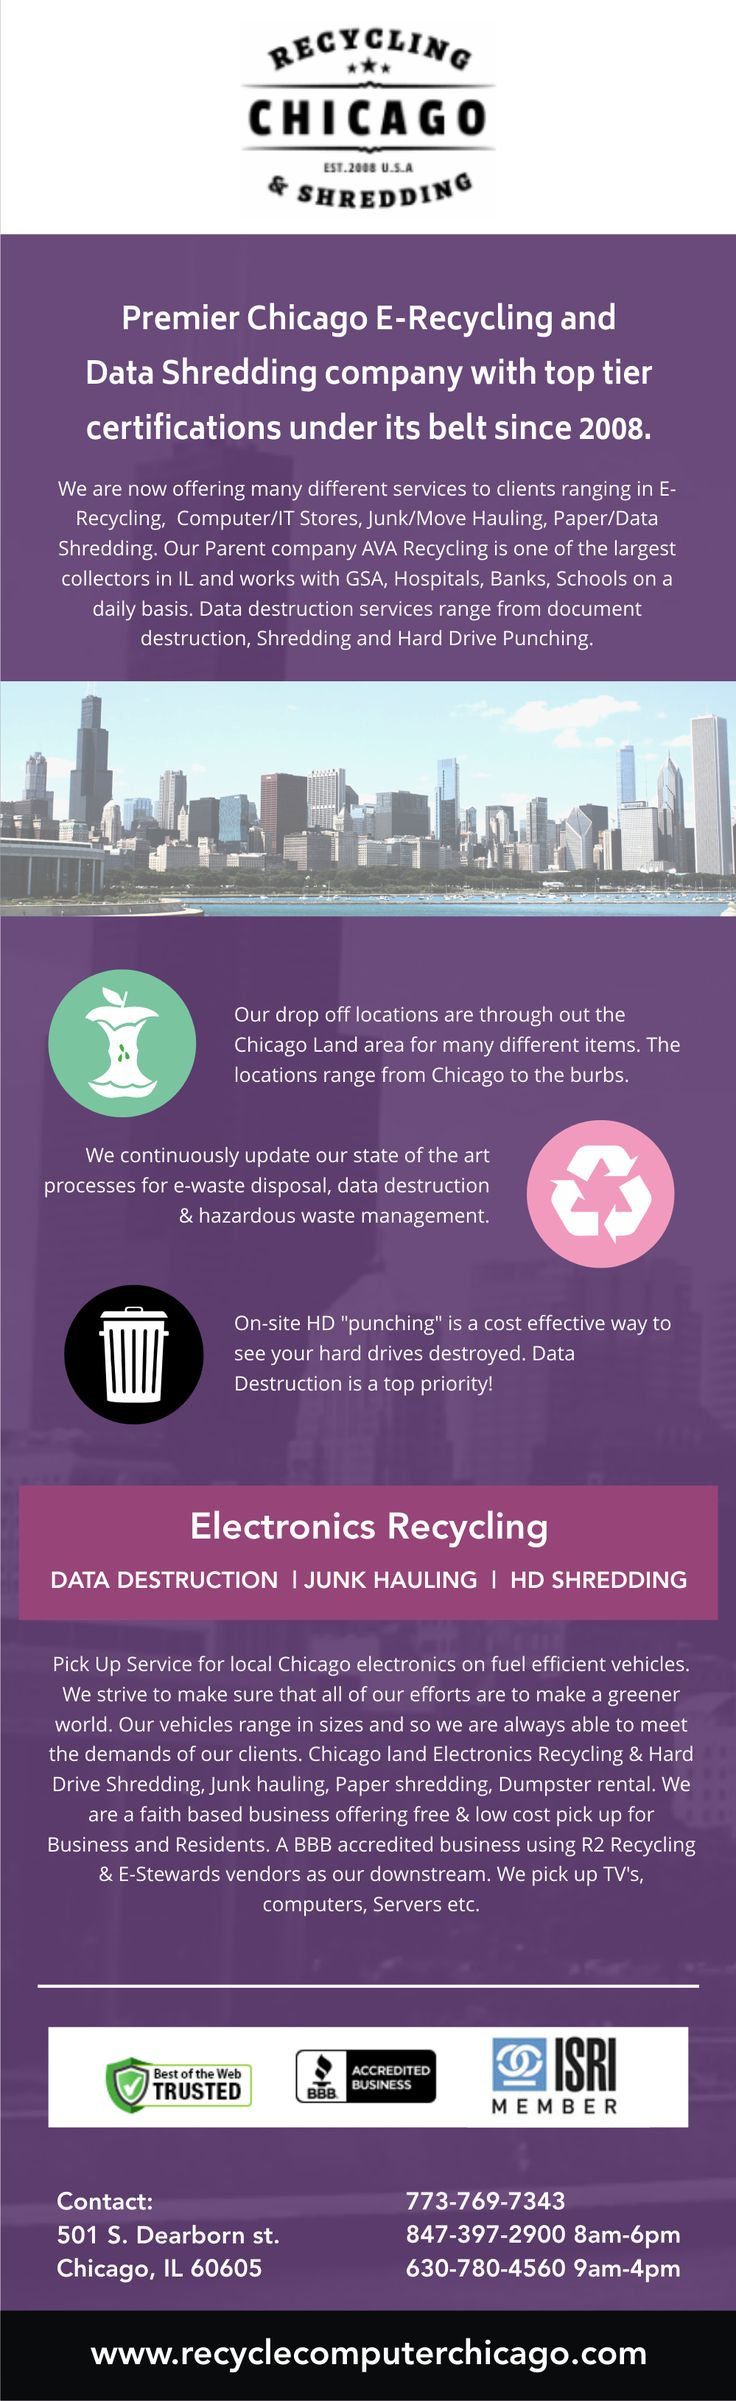 At Chicago Electronics Recycling has been in business since 2008 and is family owned and operated. They are the Premier Chicago Computer Electronics Recycling Company for all types of metals, junk vehicles, and electronics. They offer over twenty drop-off locations that are free for all items except televisions, for which they charge a low cost television recycling fee. They also offer pick up service for businesses and residential.